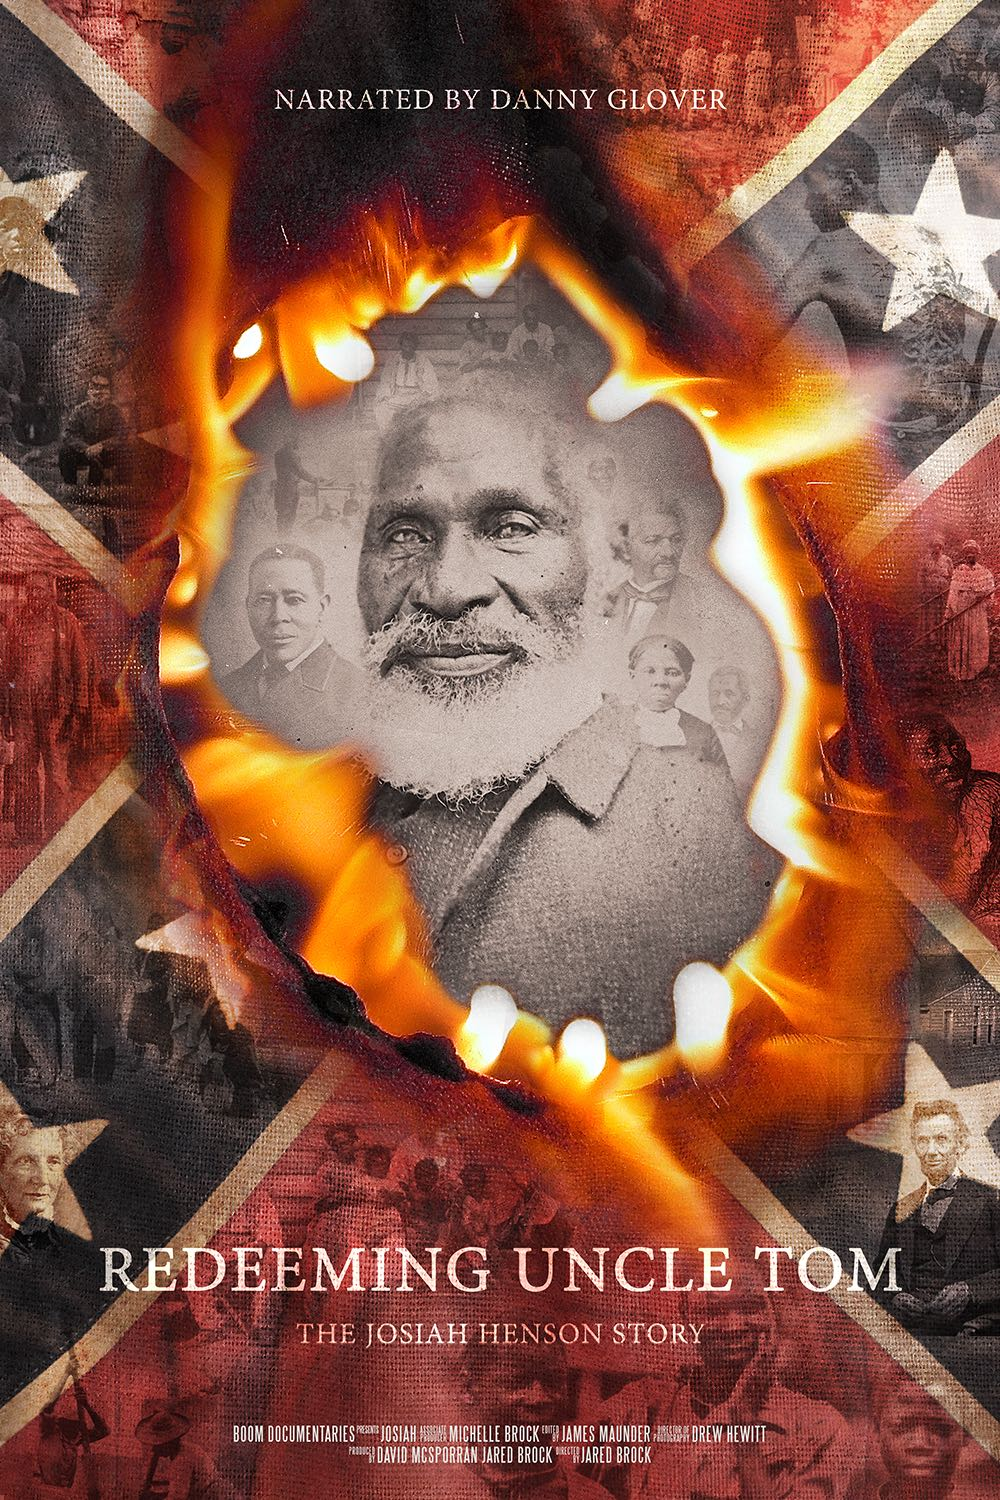 Redeeming Uncle Tom 1000x1500.jpg